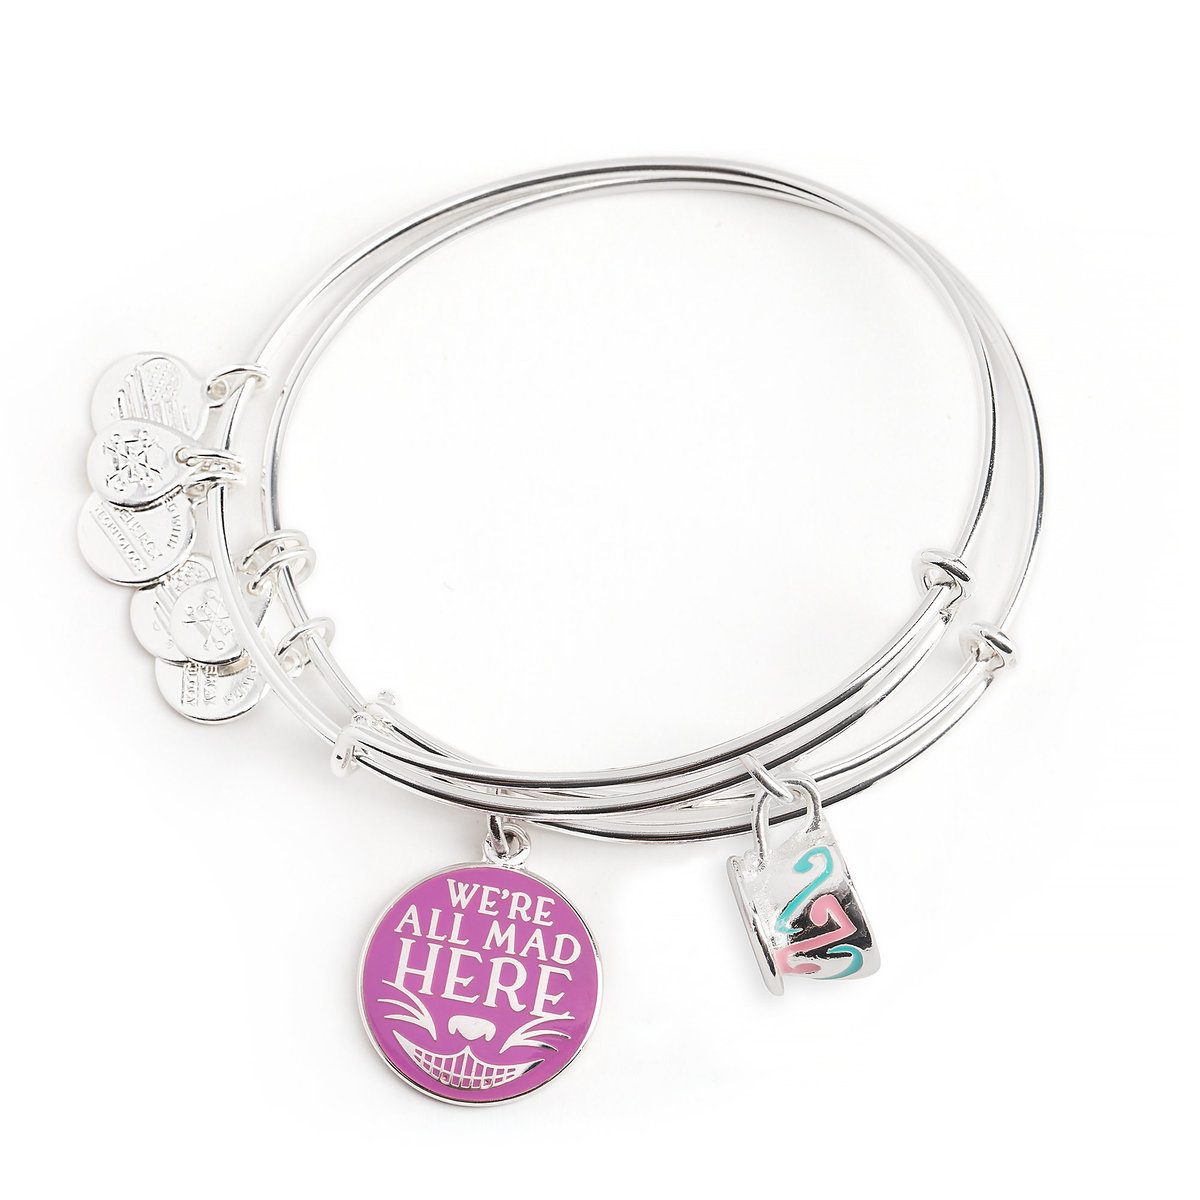 d9c4d976e Product Image of Cheshire Cat Mad Tea Party Bangle Set by Alex and Ani # 1